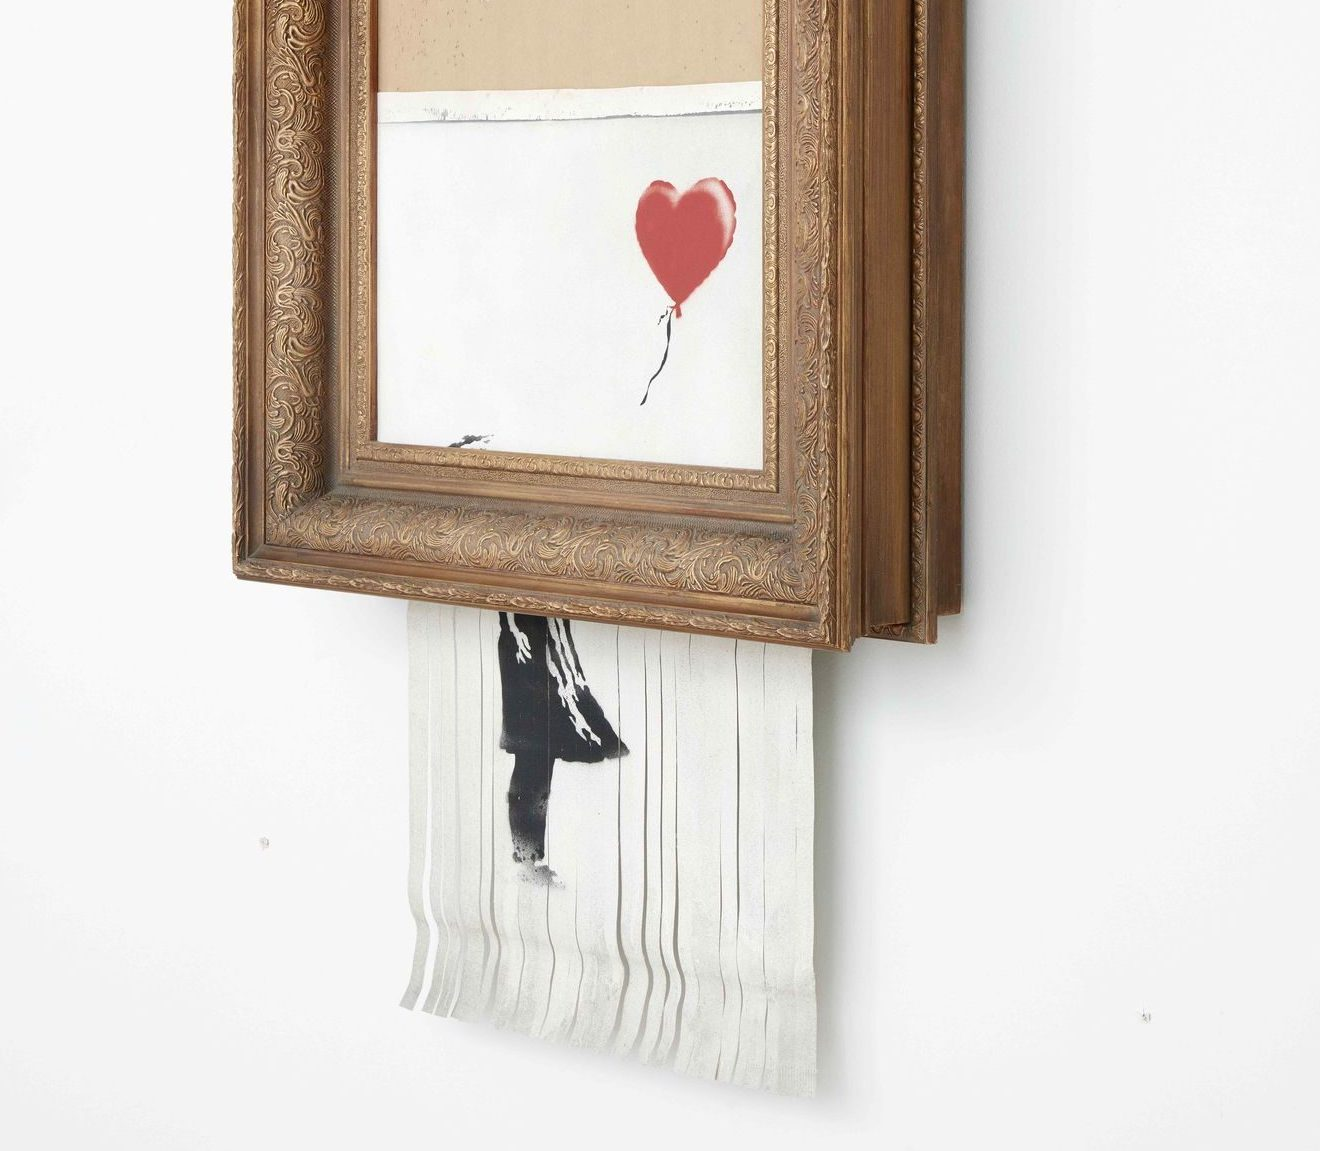 Museum Frieder Burda Baden-Baden, Banksy, Love is in the Bin